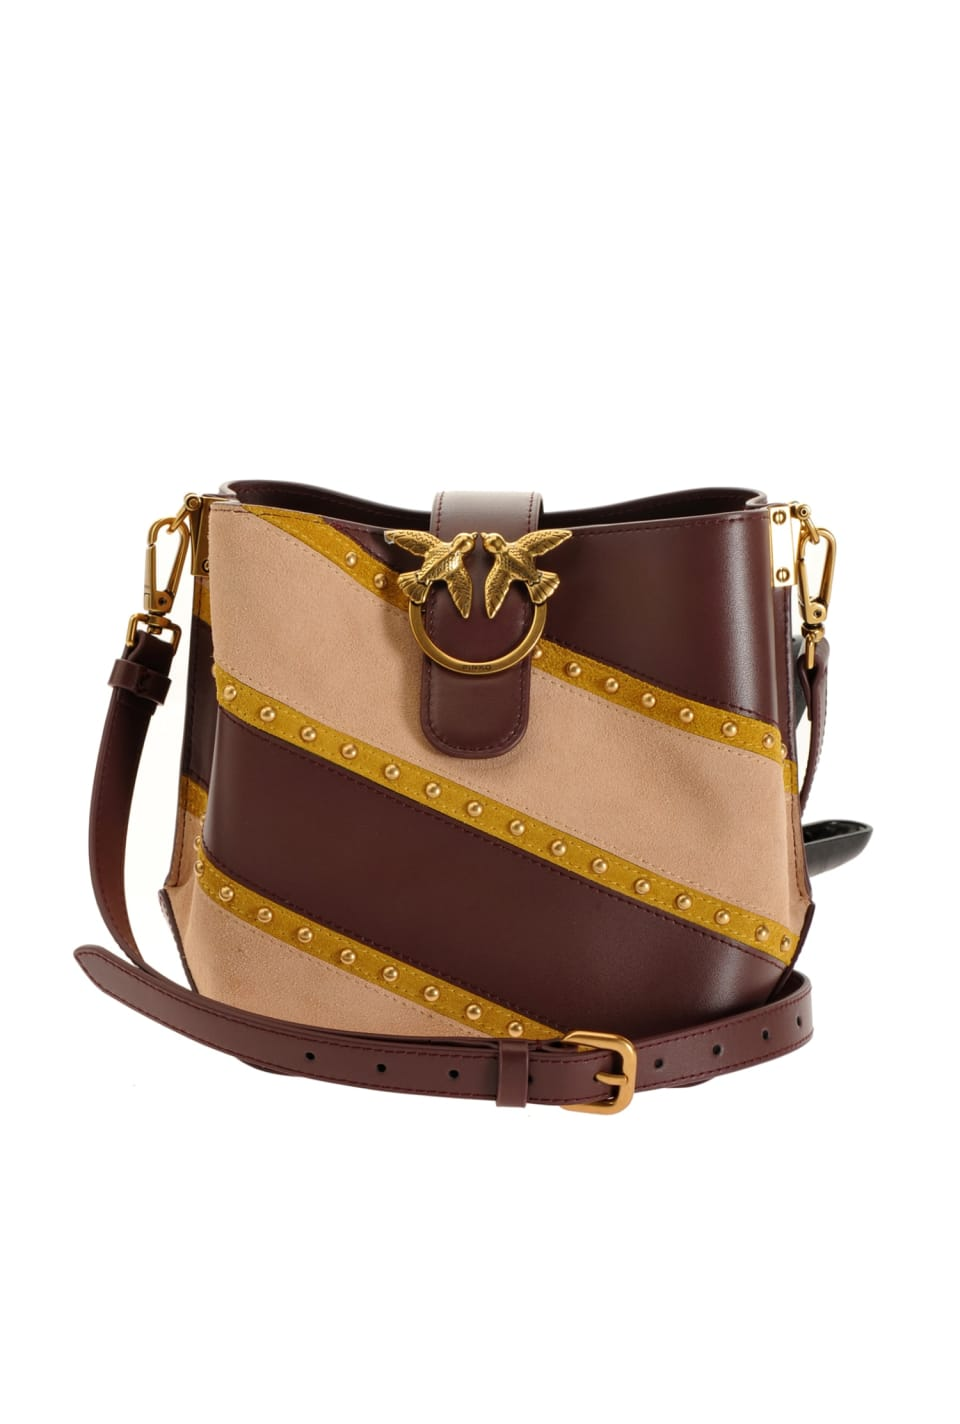 Bucket Love Bag Woodstock in leather, suede and studs - Pinko